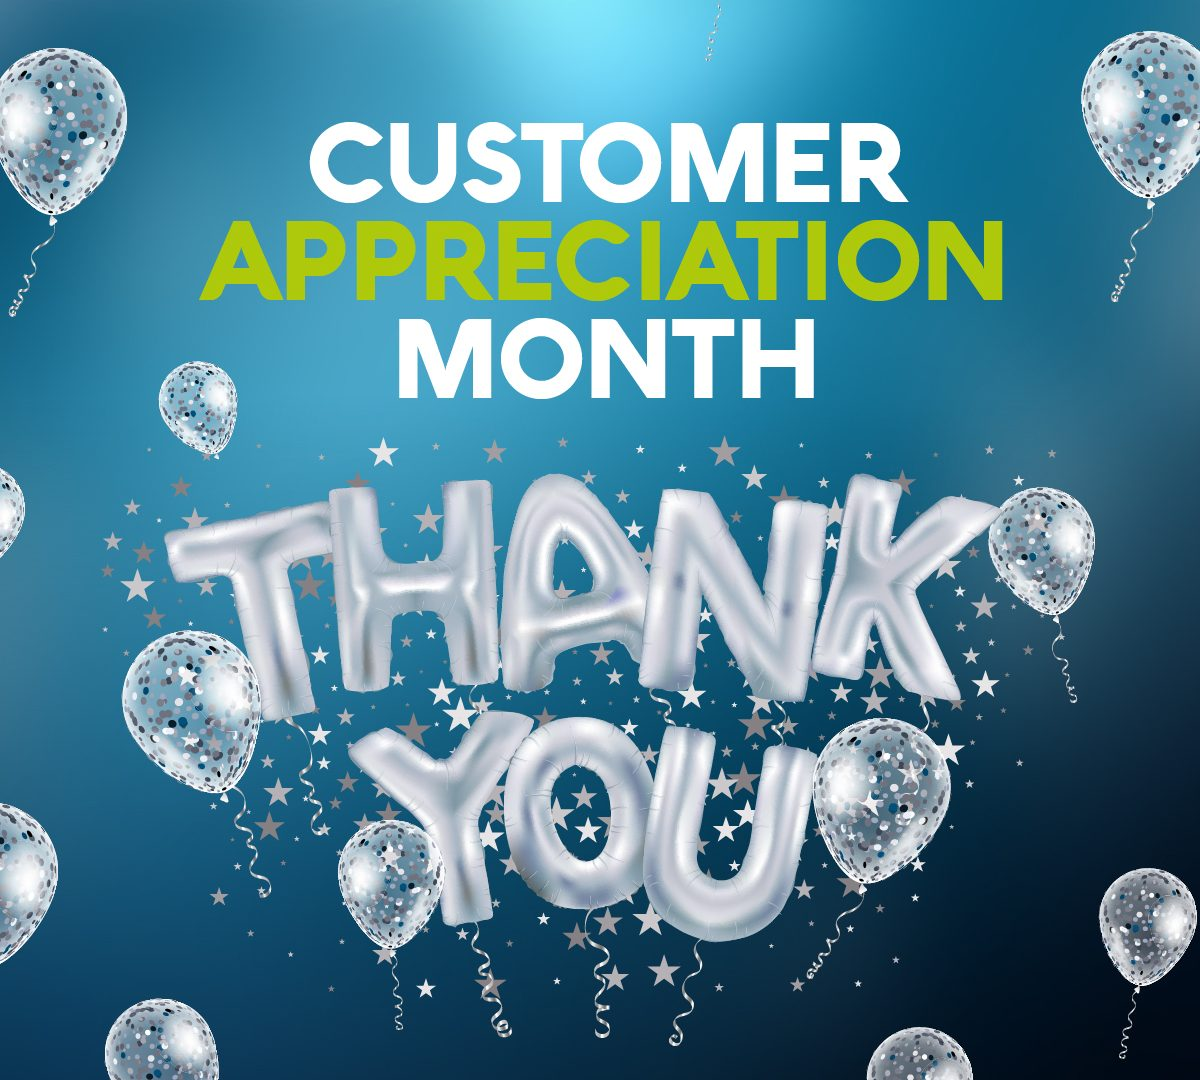 12026 CW CustomerAppreciation Website Events Story 05.01.18